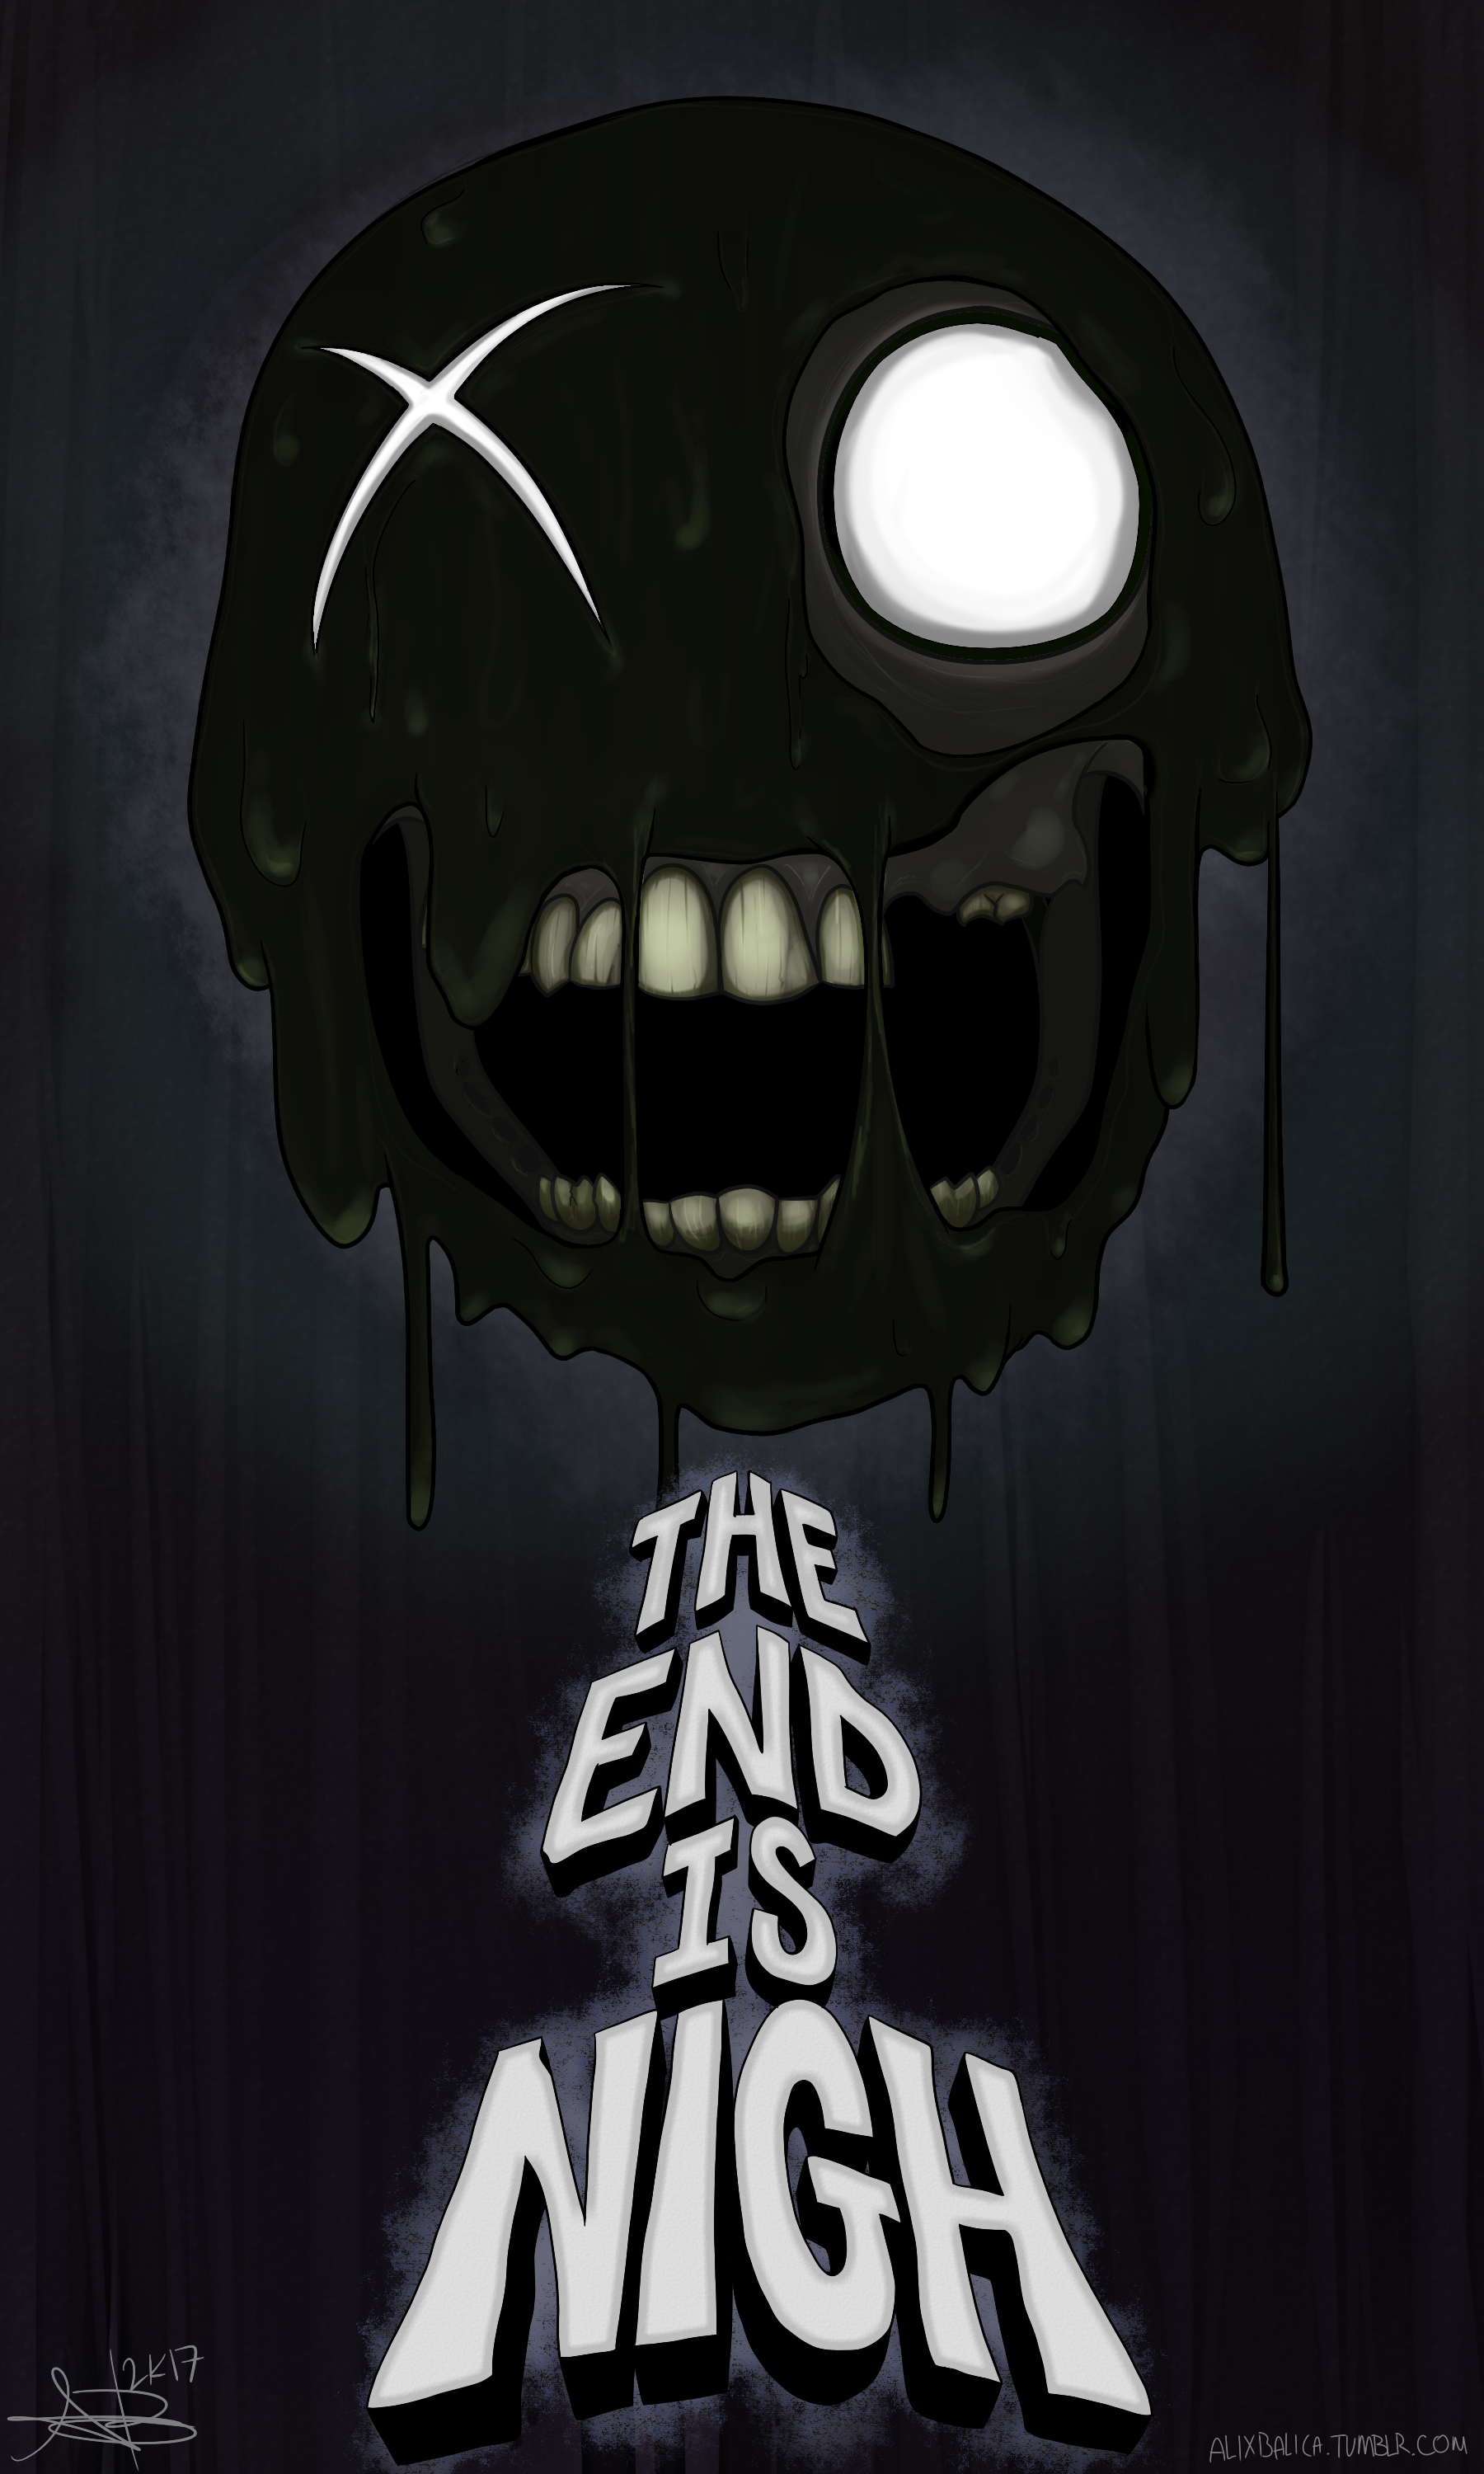 The End is here!